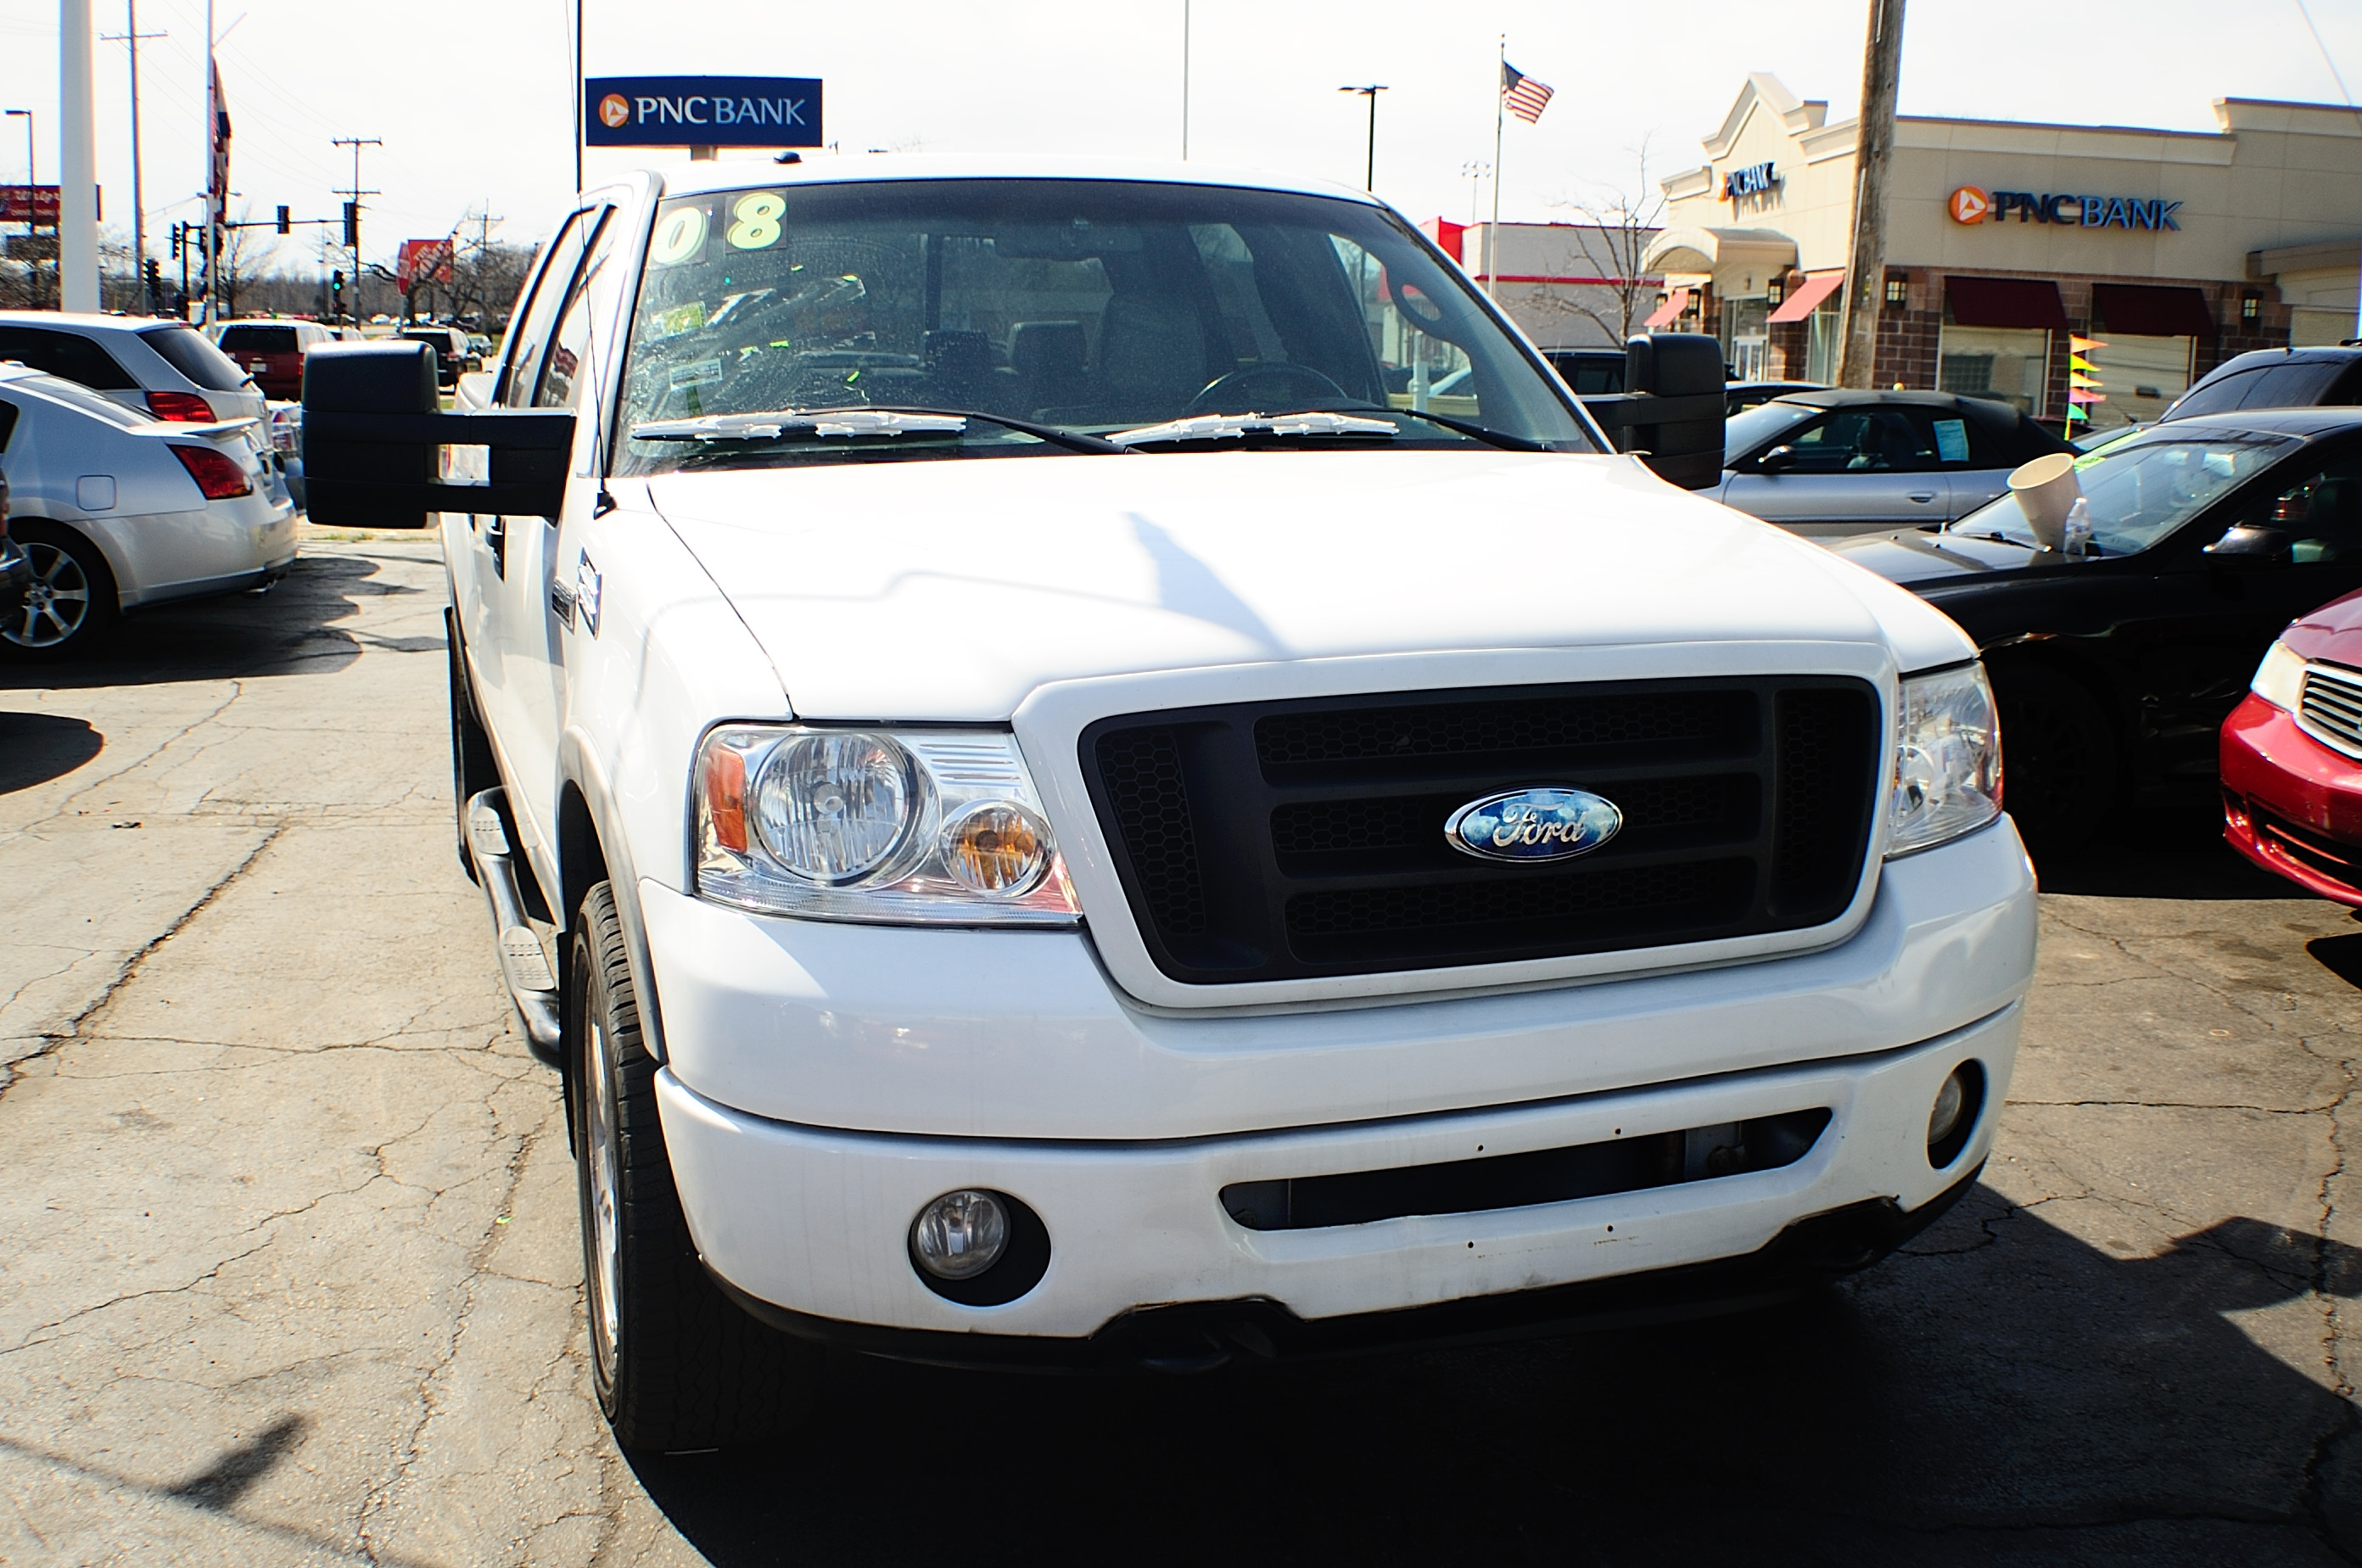 2008 Ford F150 4Dr White Pickup Truck sale Bannockburn Barrington Beach Park